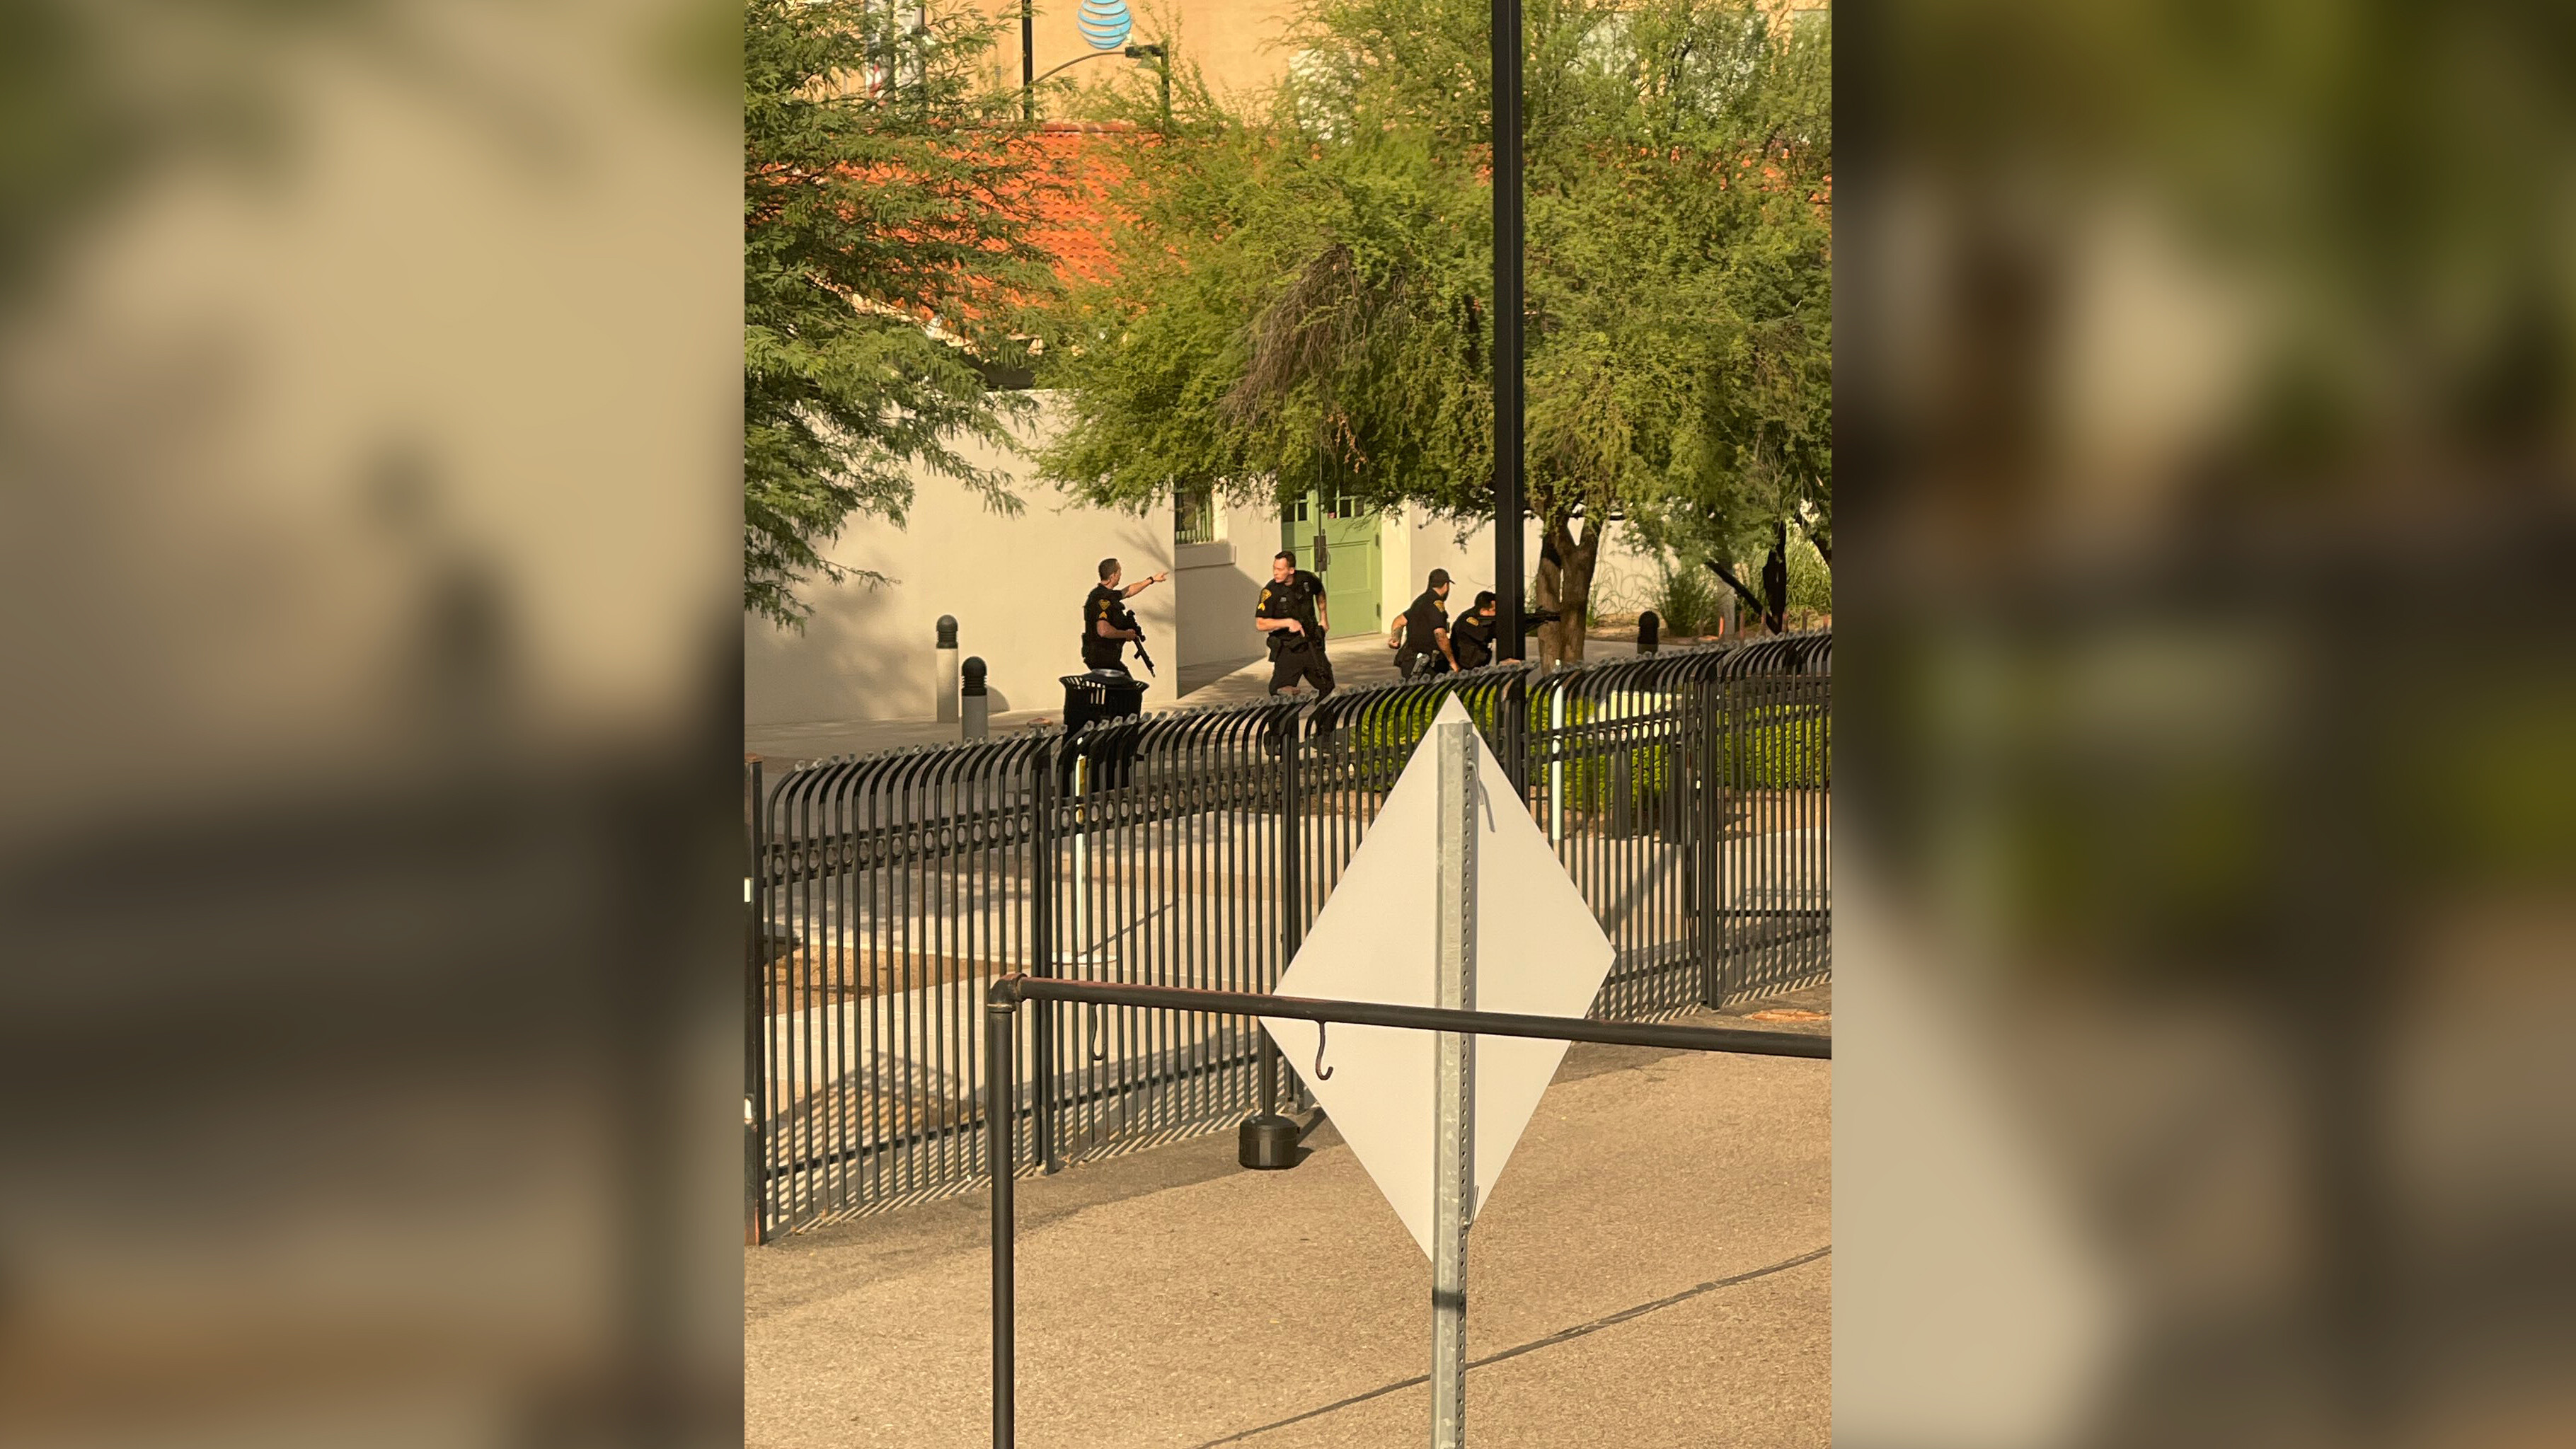 1 DEA agent killed, 2 officers injured in Amtrak train shooting in Tucson